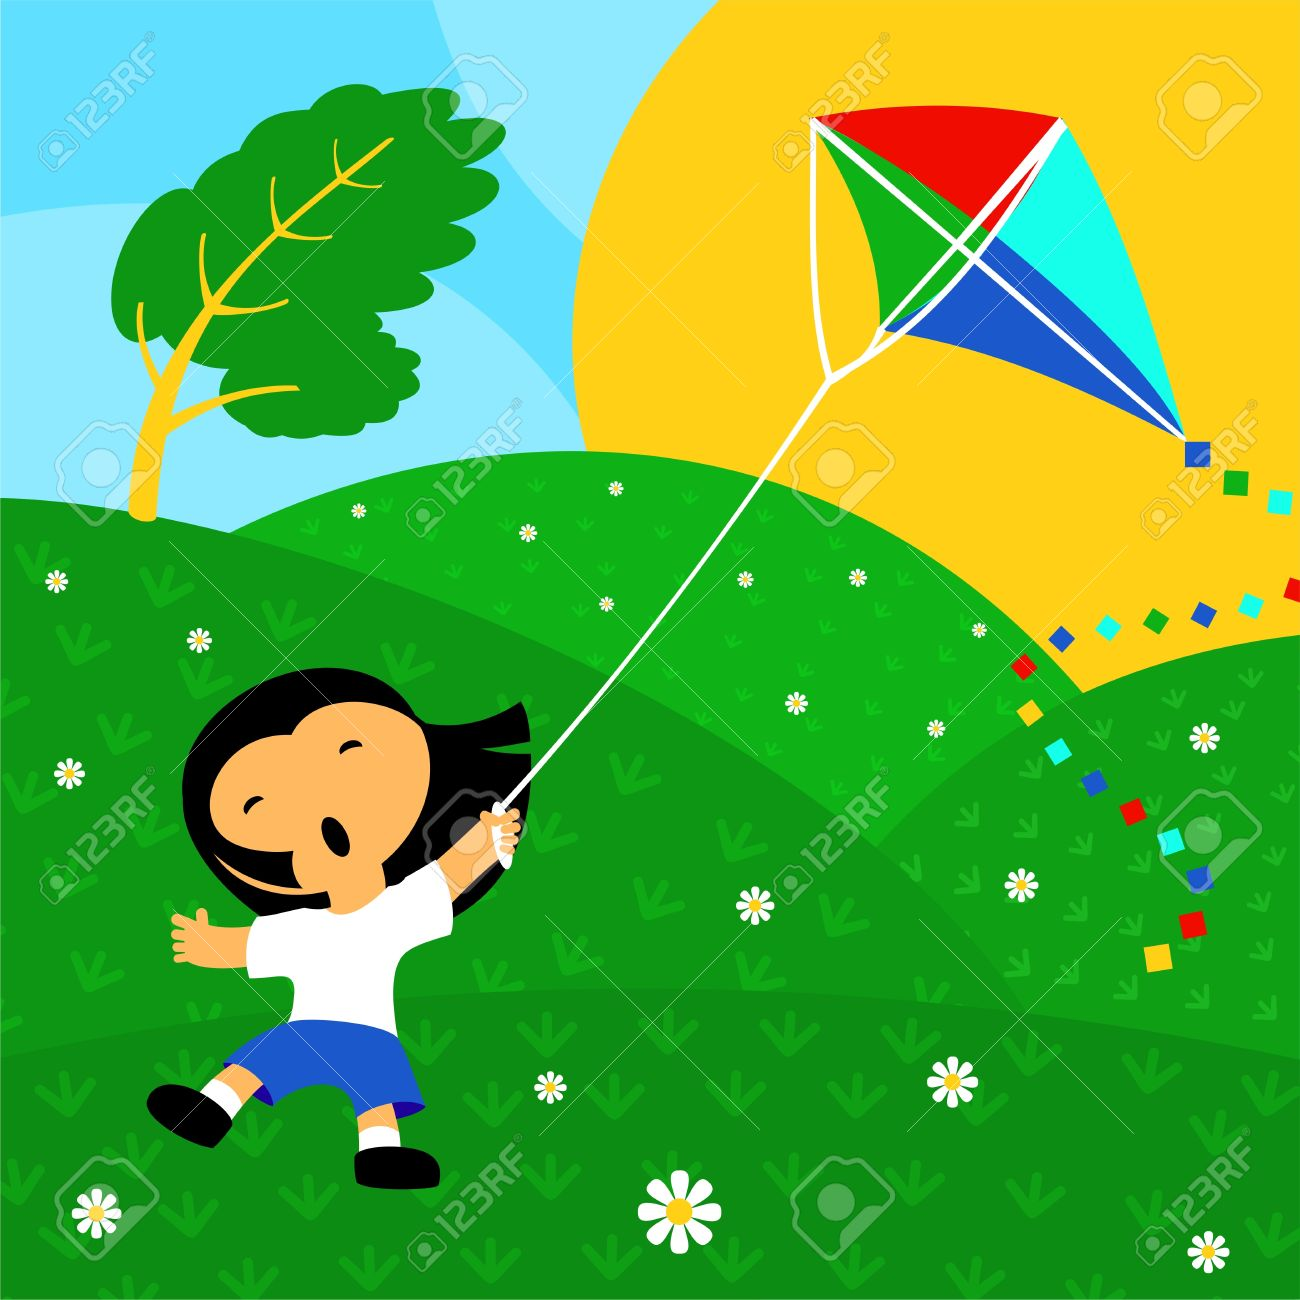 kite clipart windy day